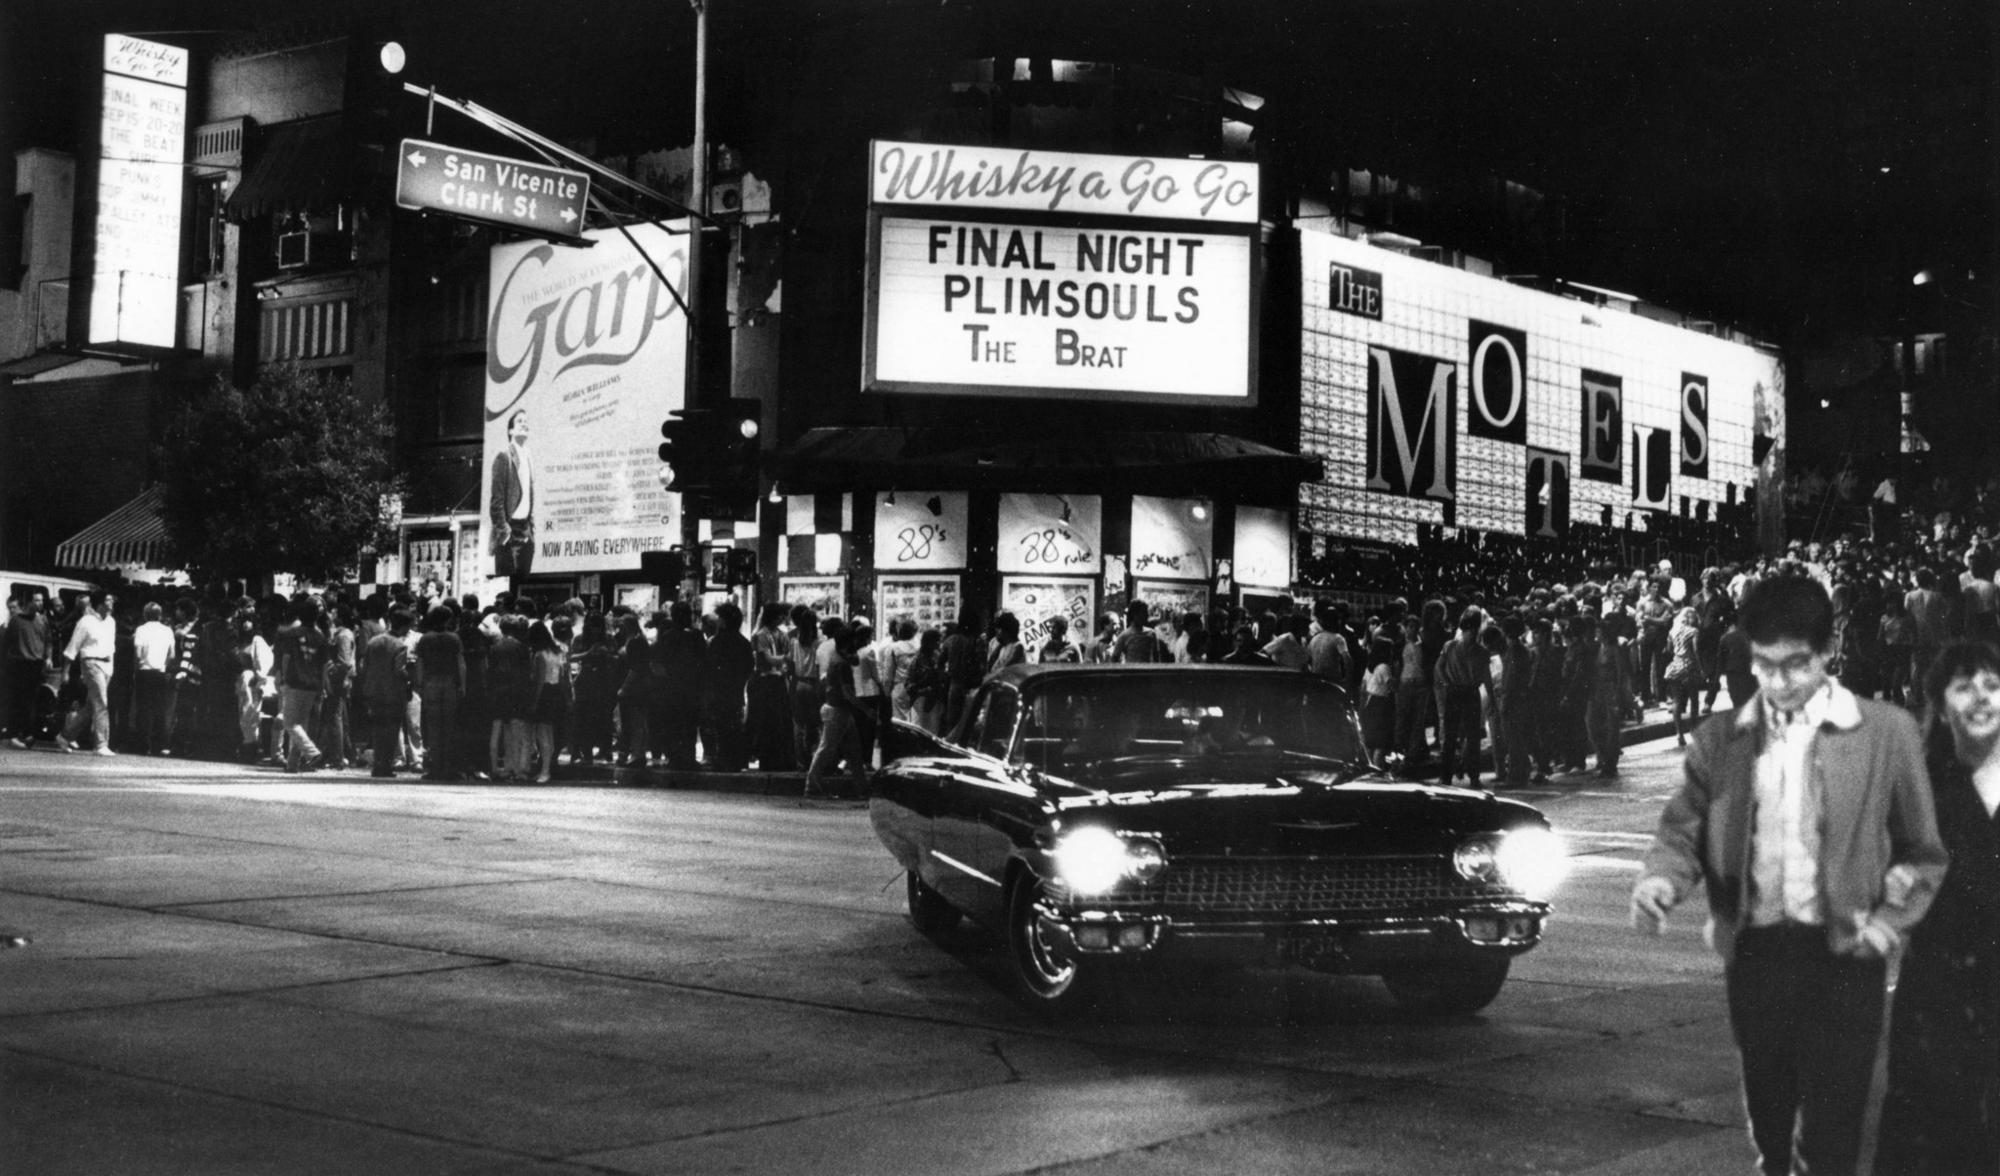 A crowd outside the Whisky a Go Go on the Sunset Strip in 1982. (Marsha Traeger / Los Angeles Times)